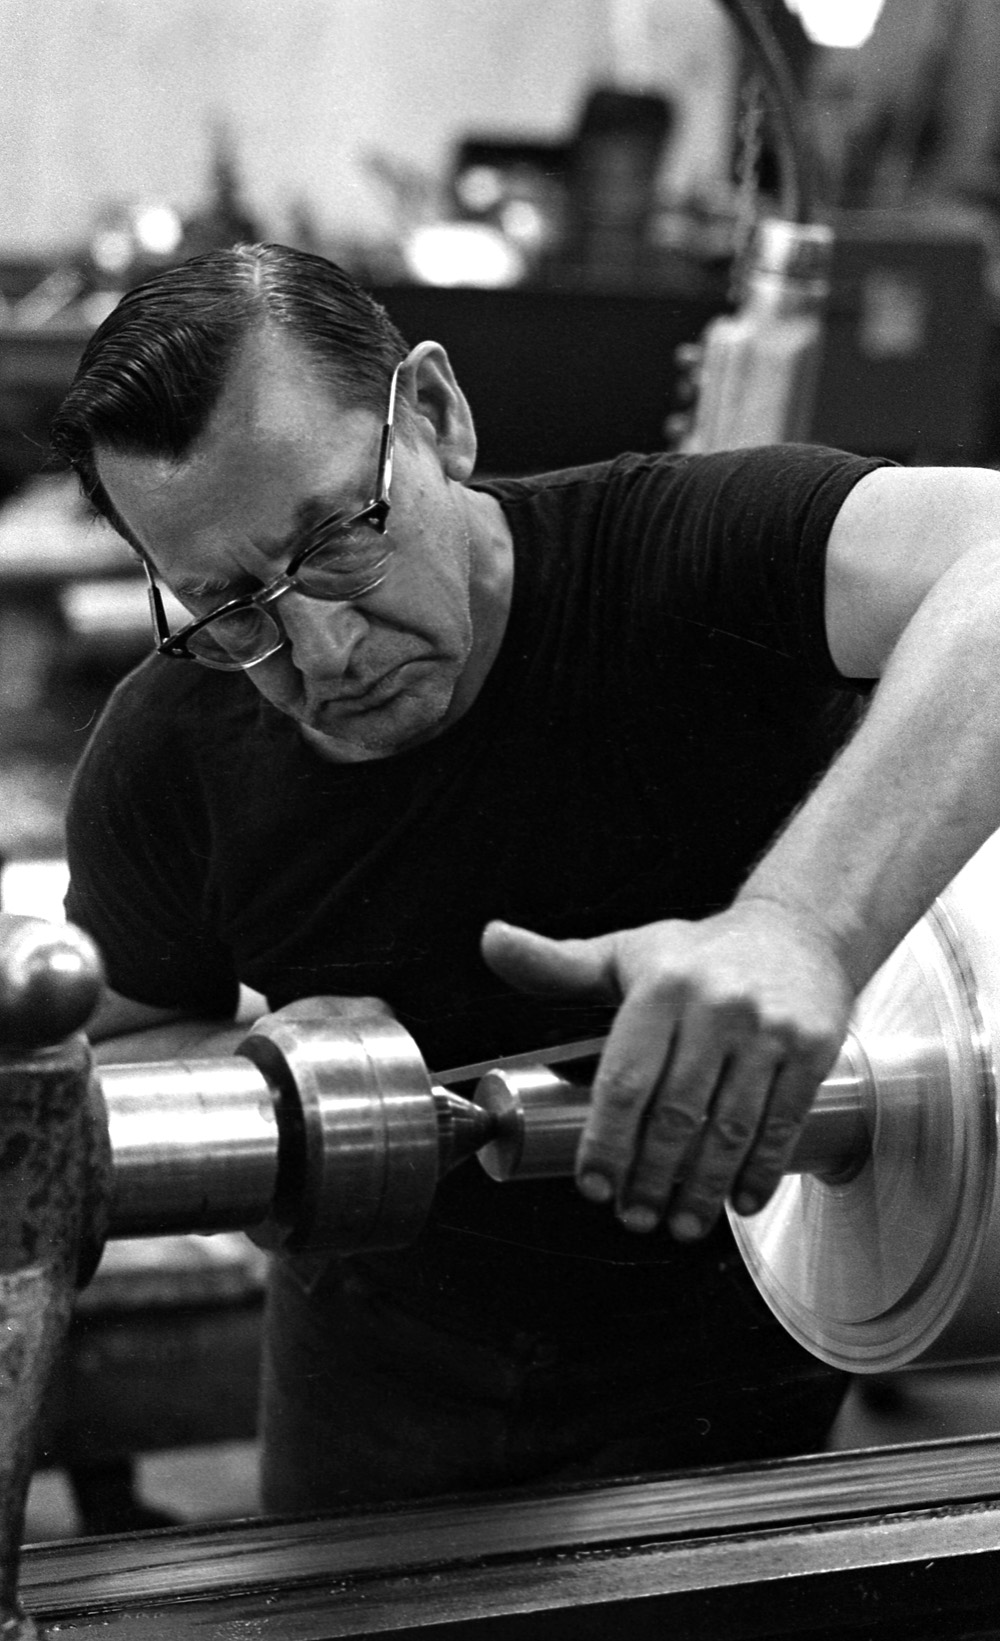 Lathe operator, Rodney Hunt co., 1974